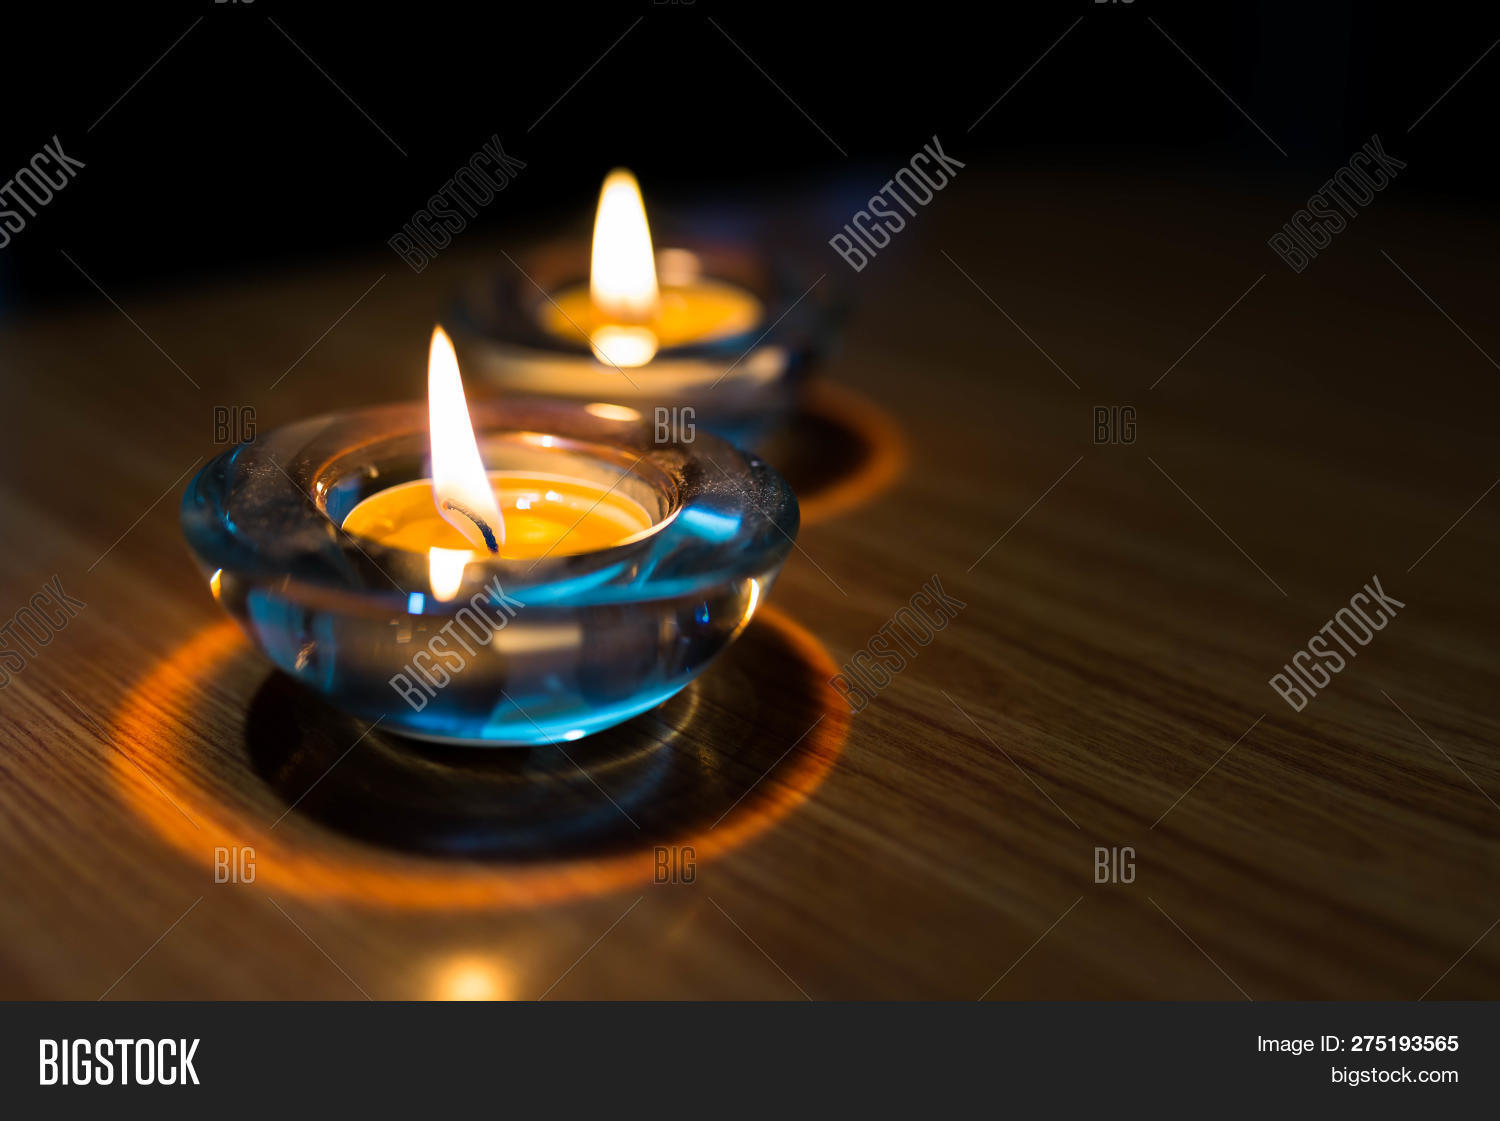 Burning Candle Lights Image & Photo (Free Trial) | Bigstock